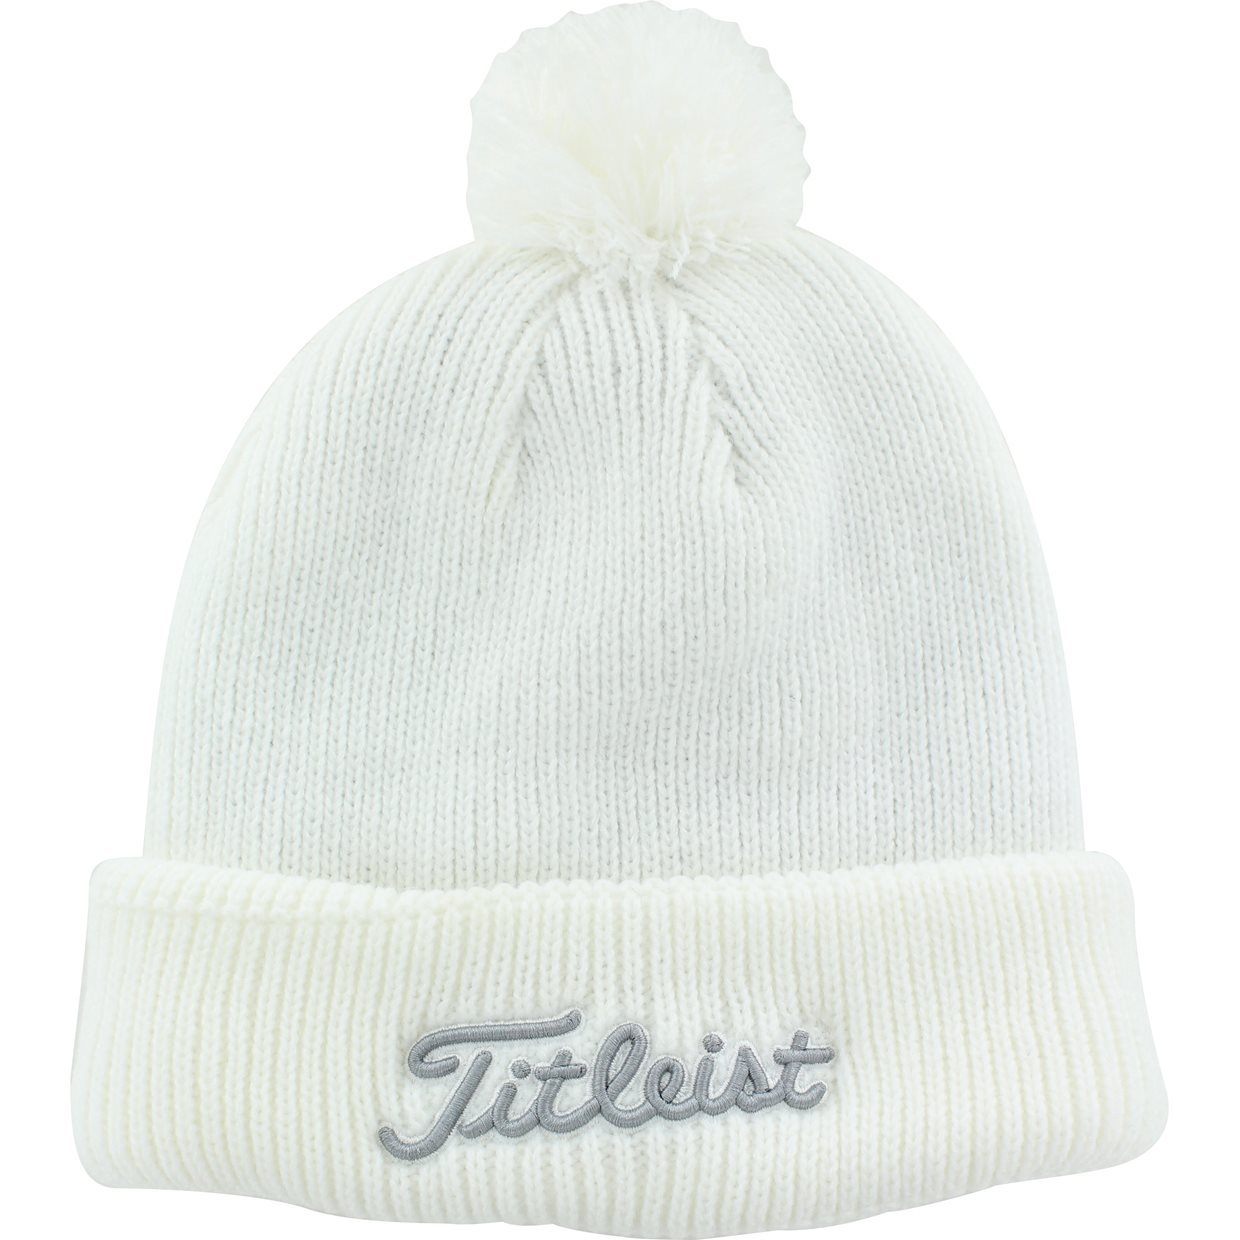 Titleist Pom Pom 2018 Headwear Apparel at GlobalGolf.com 970c4c41d00